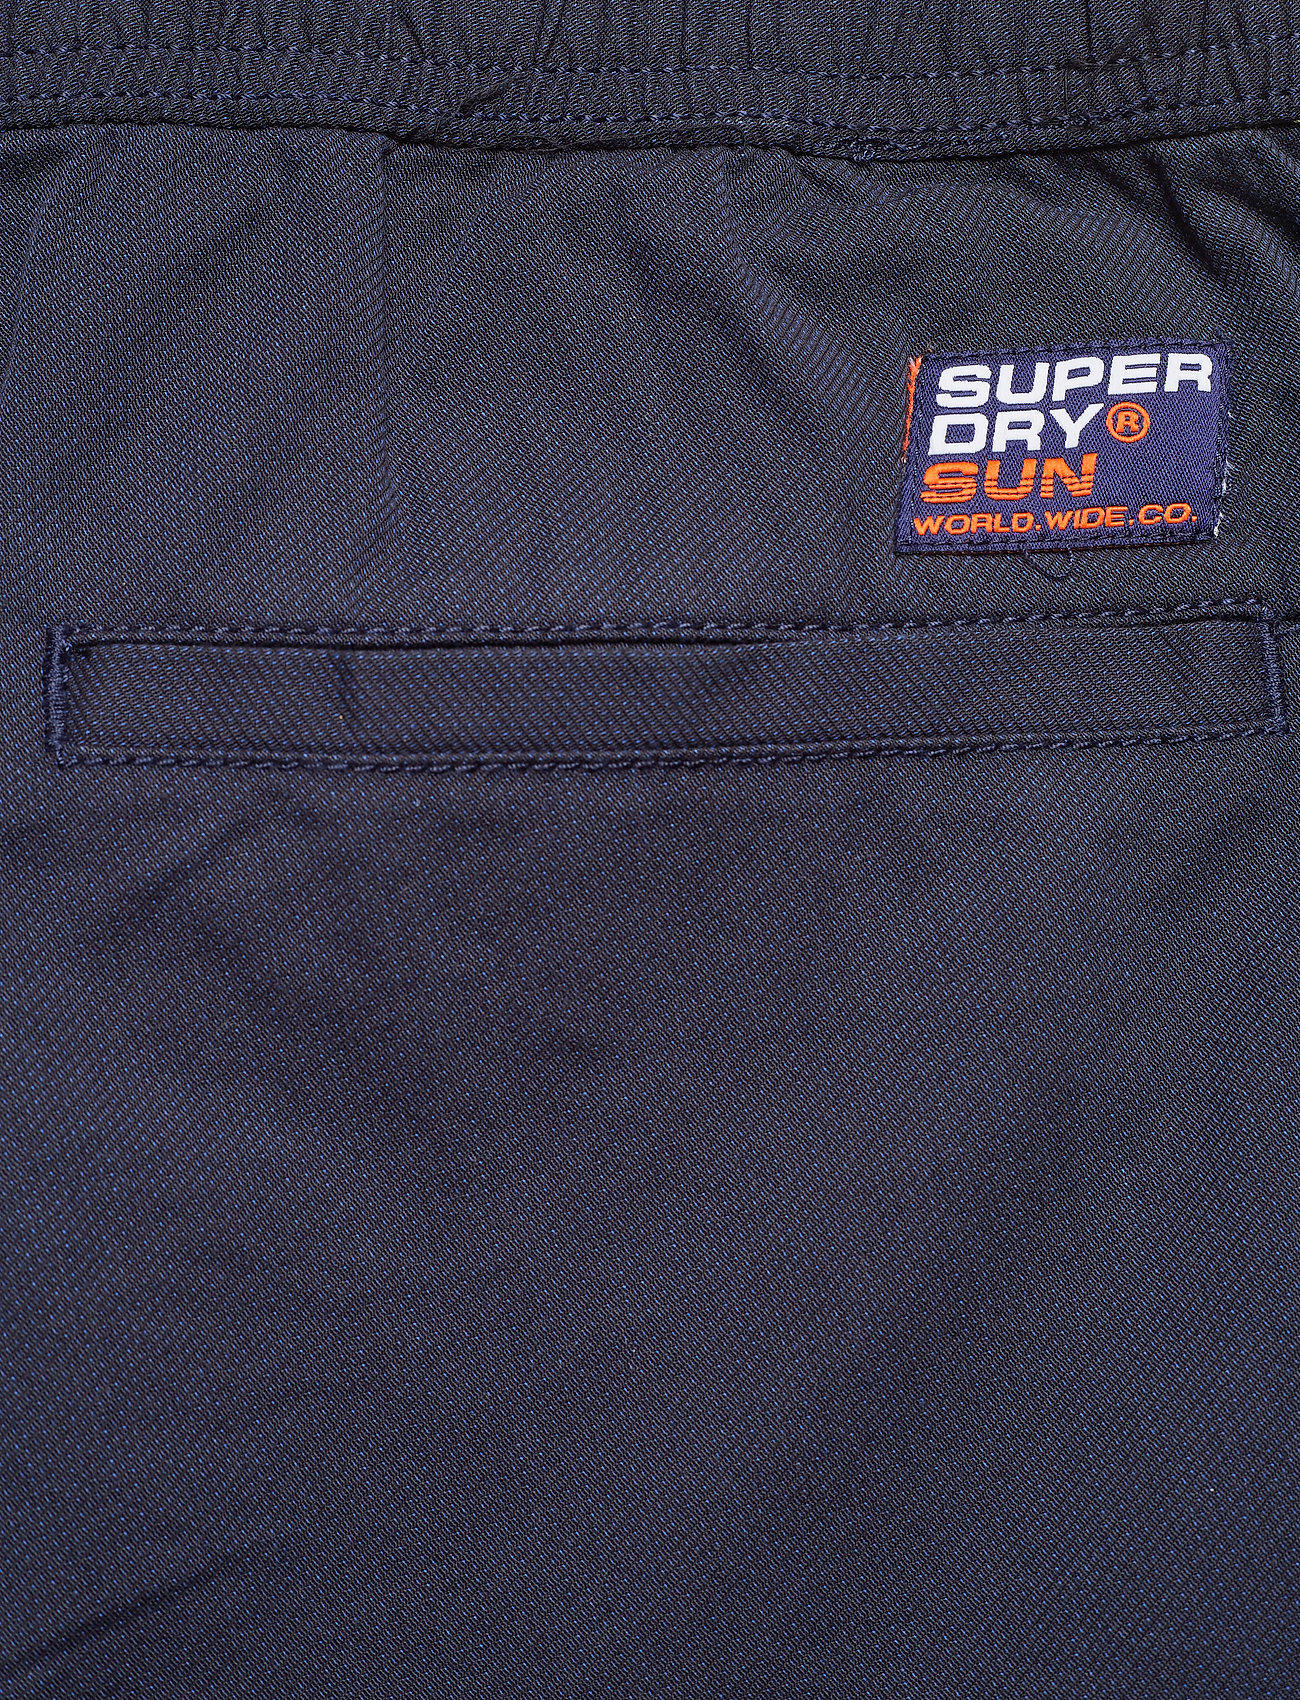 Superdry Sunscorched Short - Shorts Navy Micro Dot